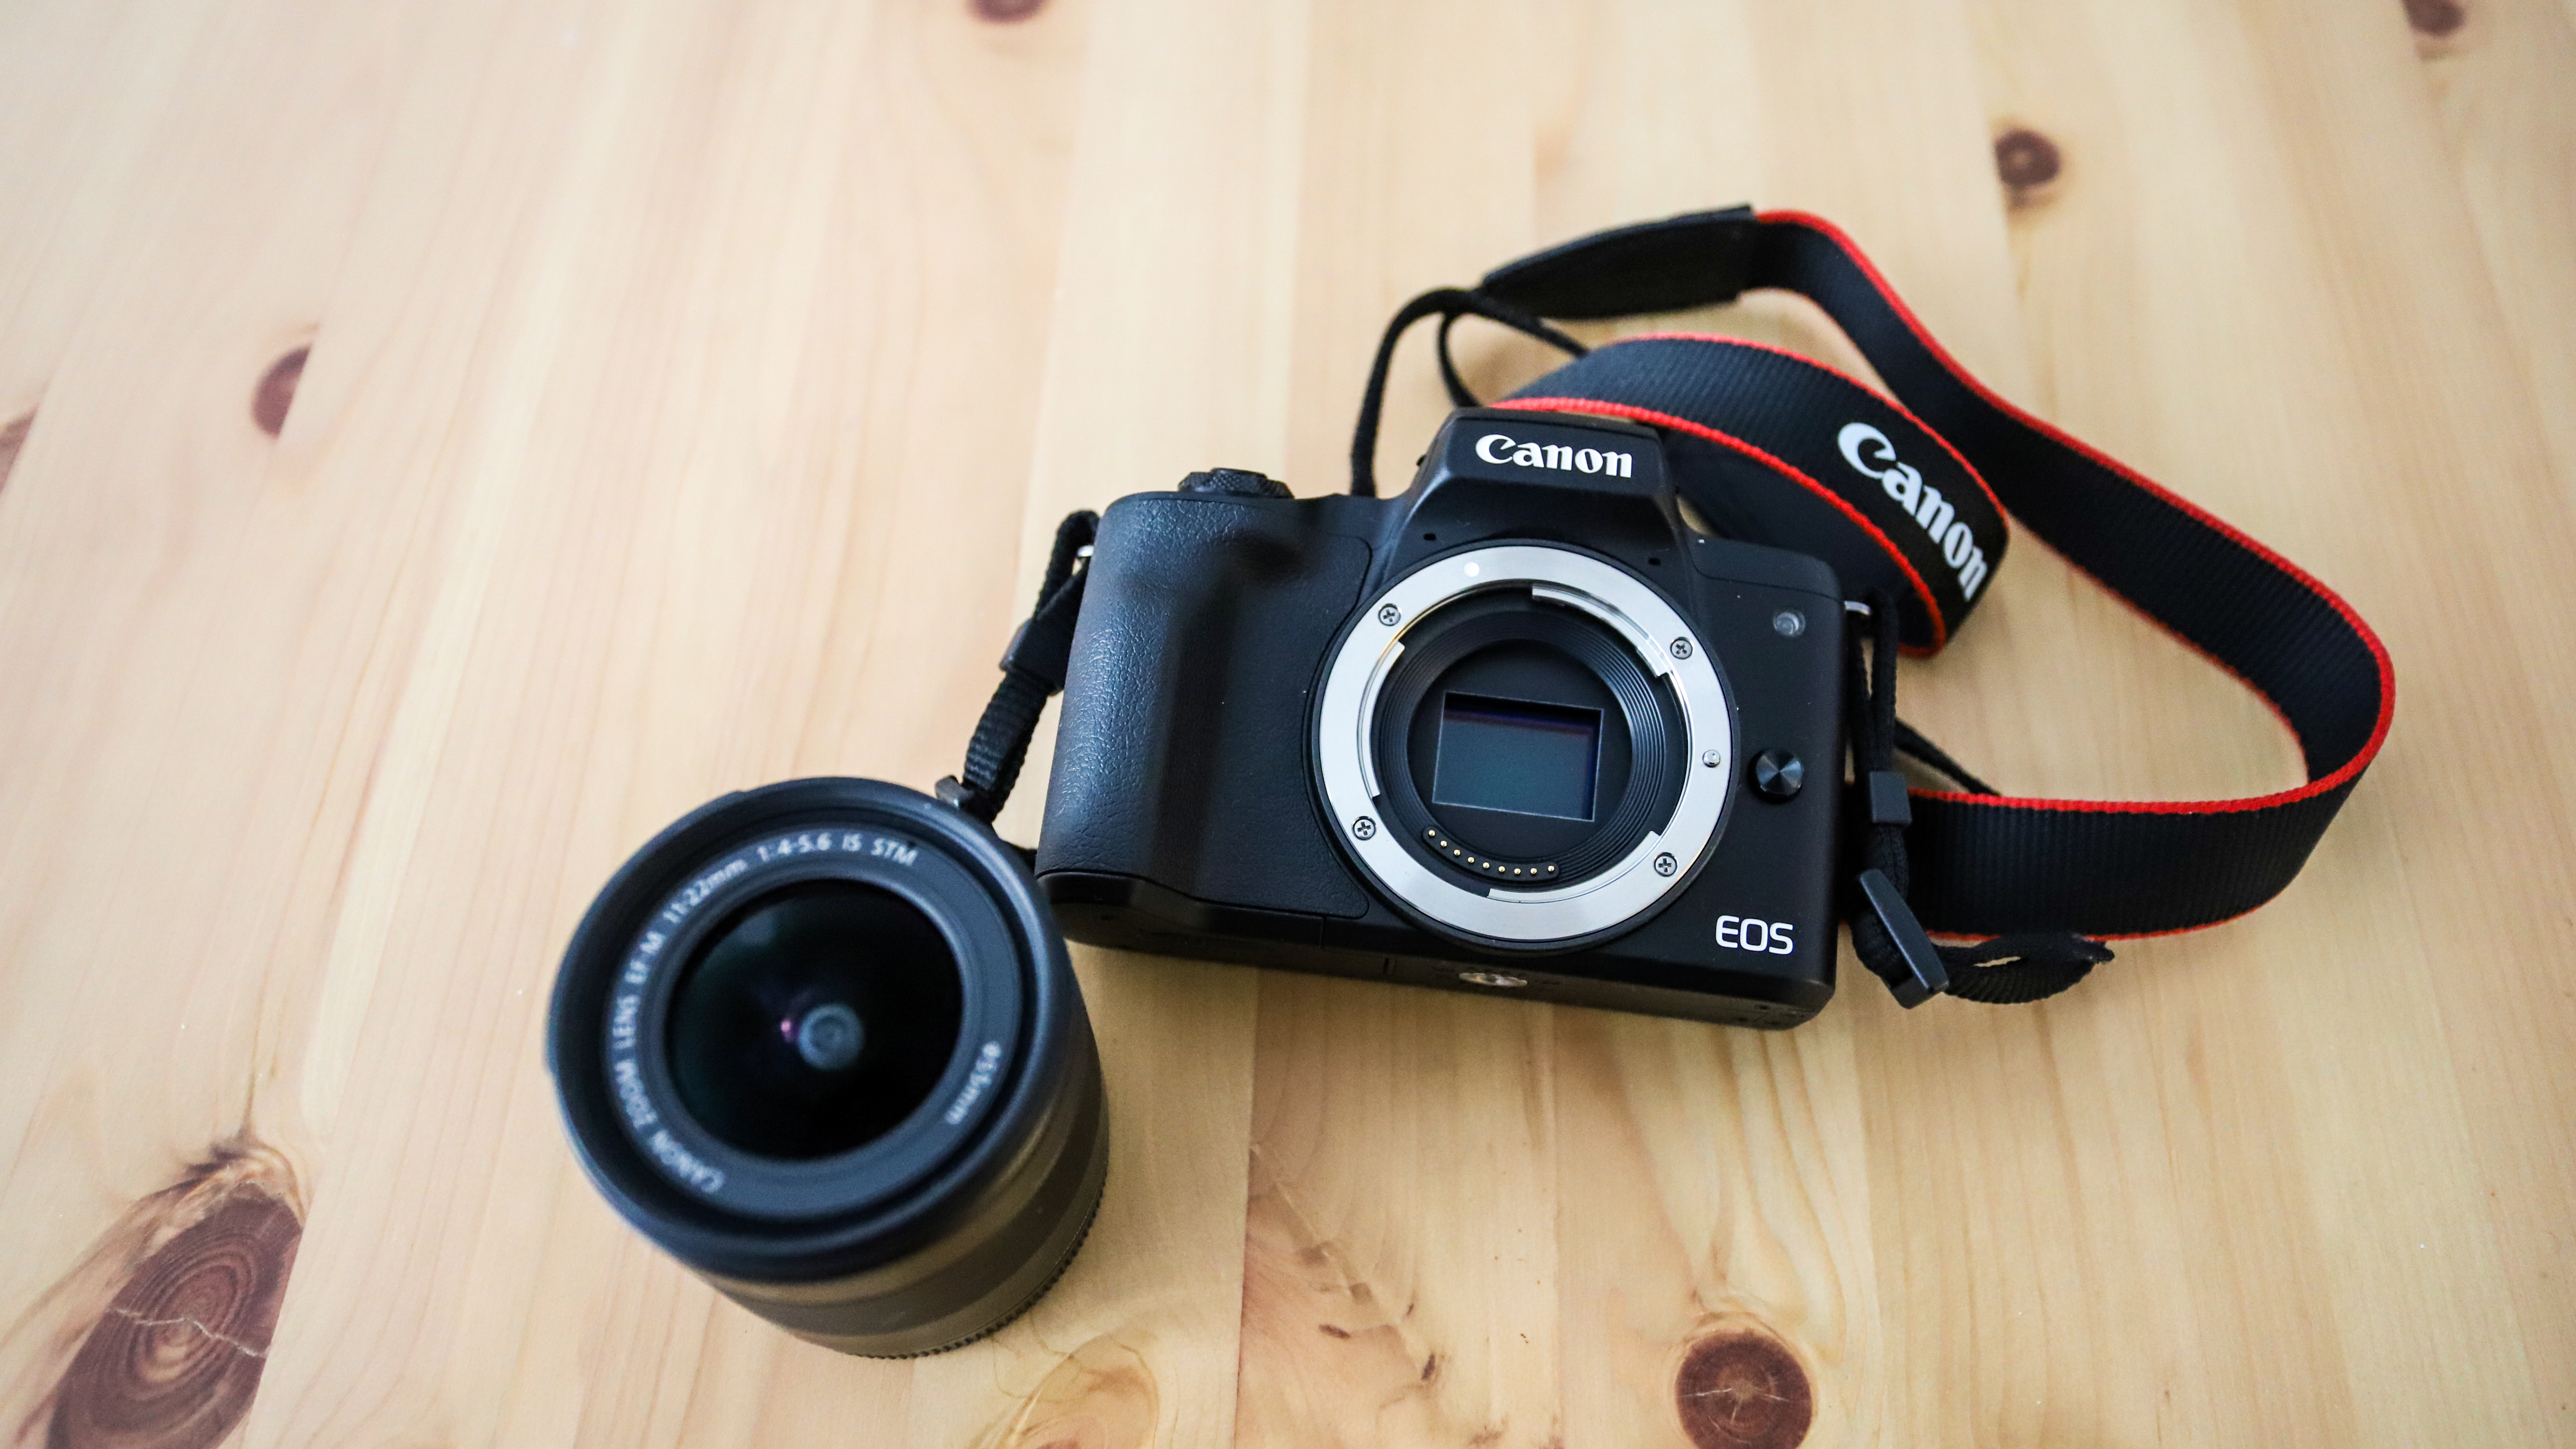 The Canon EOS M50 Mark II on a wooden floor next to a 11-22mm lens.